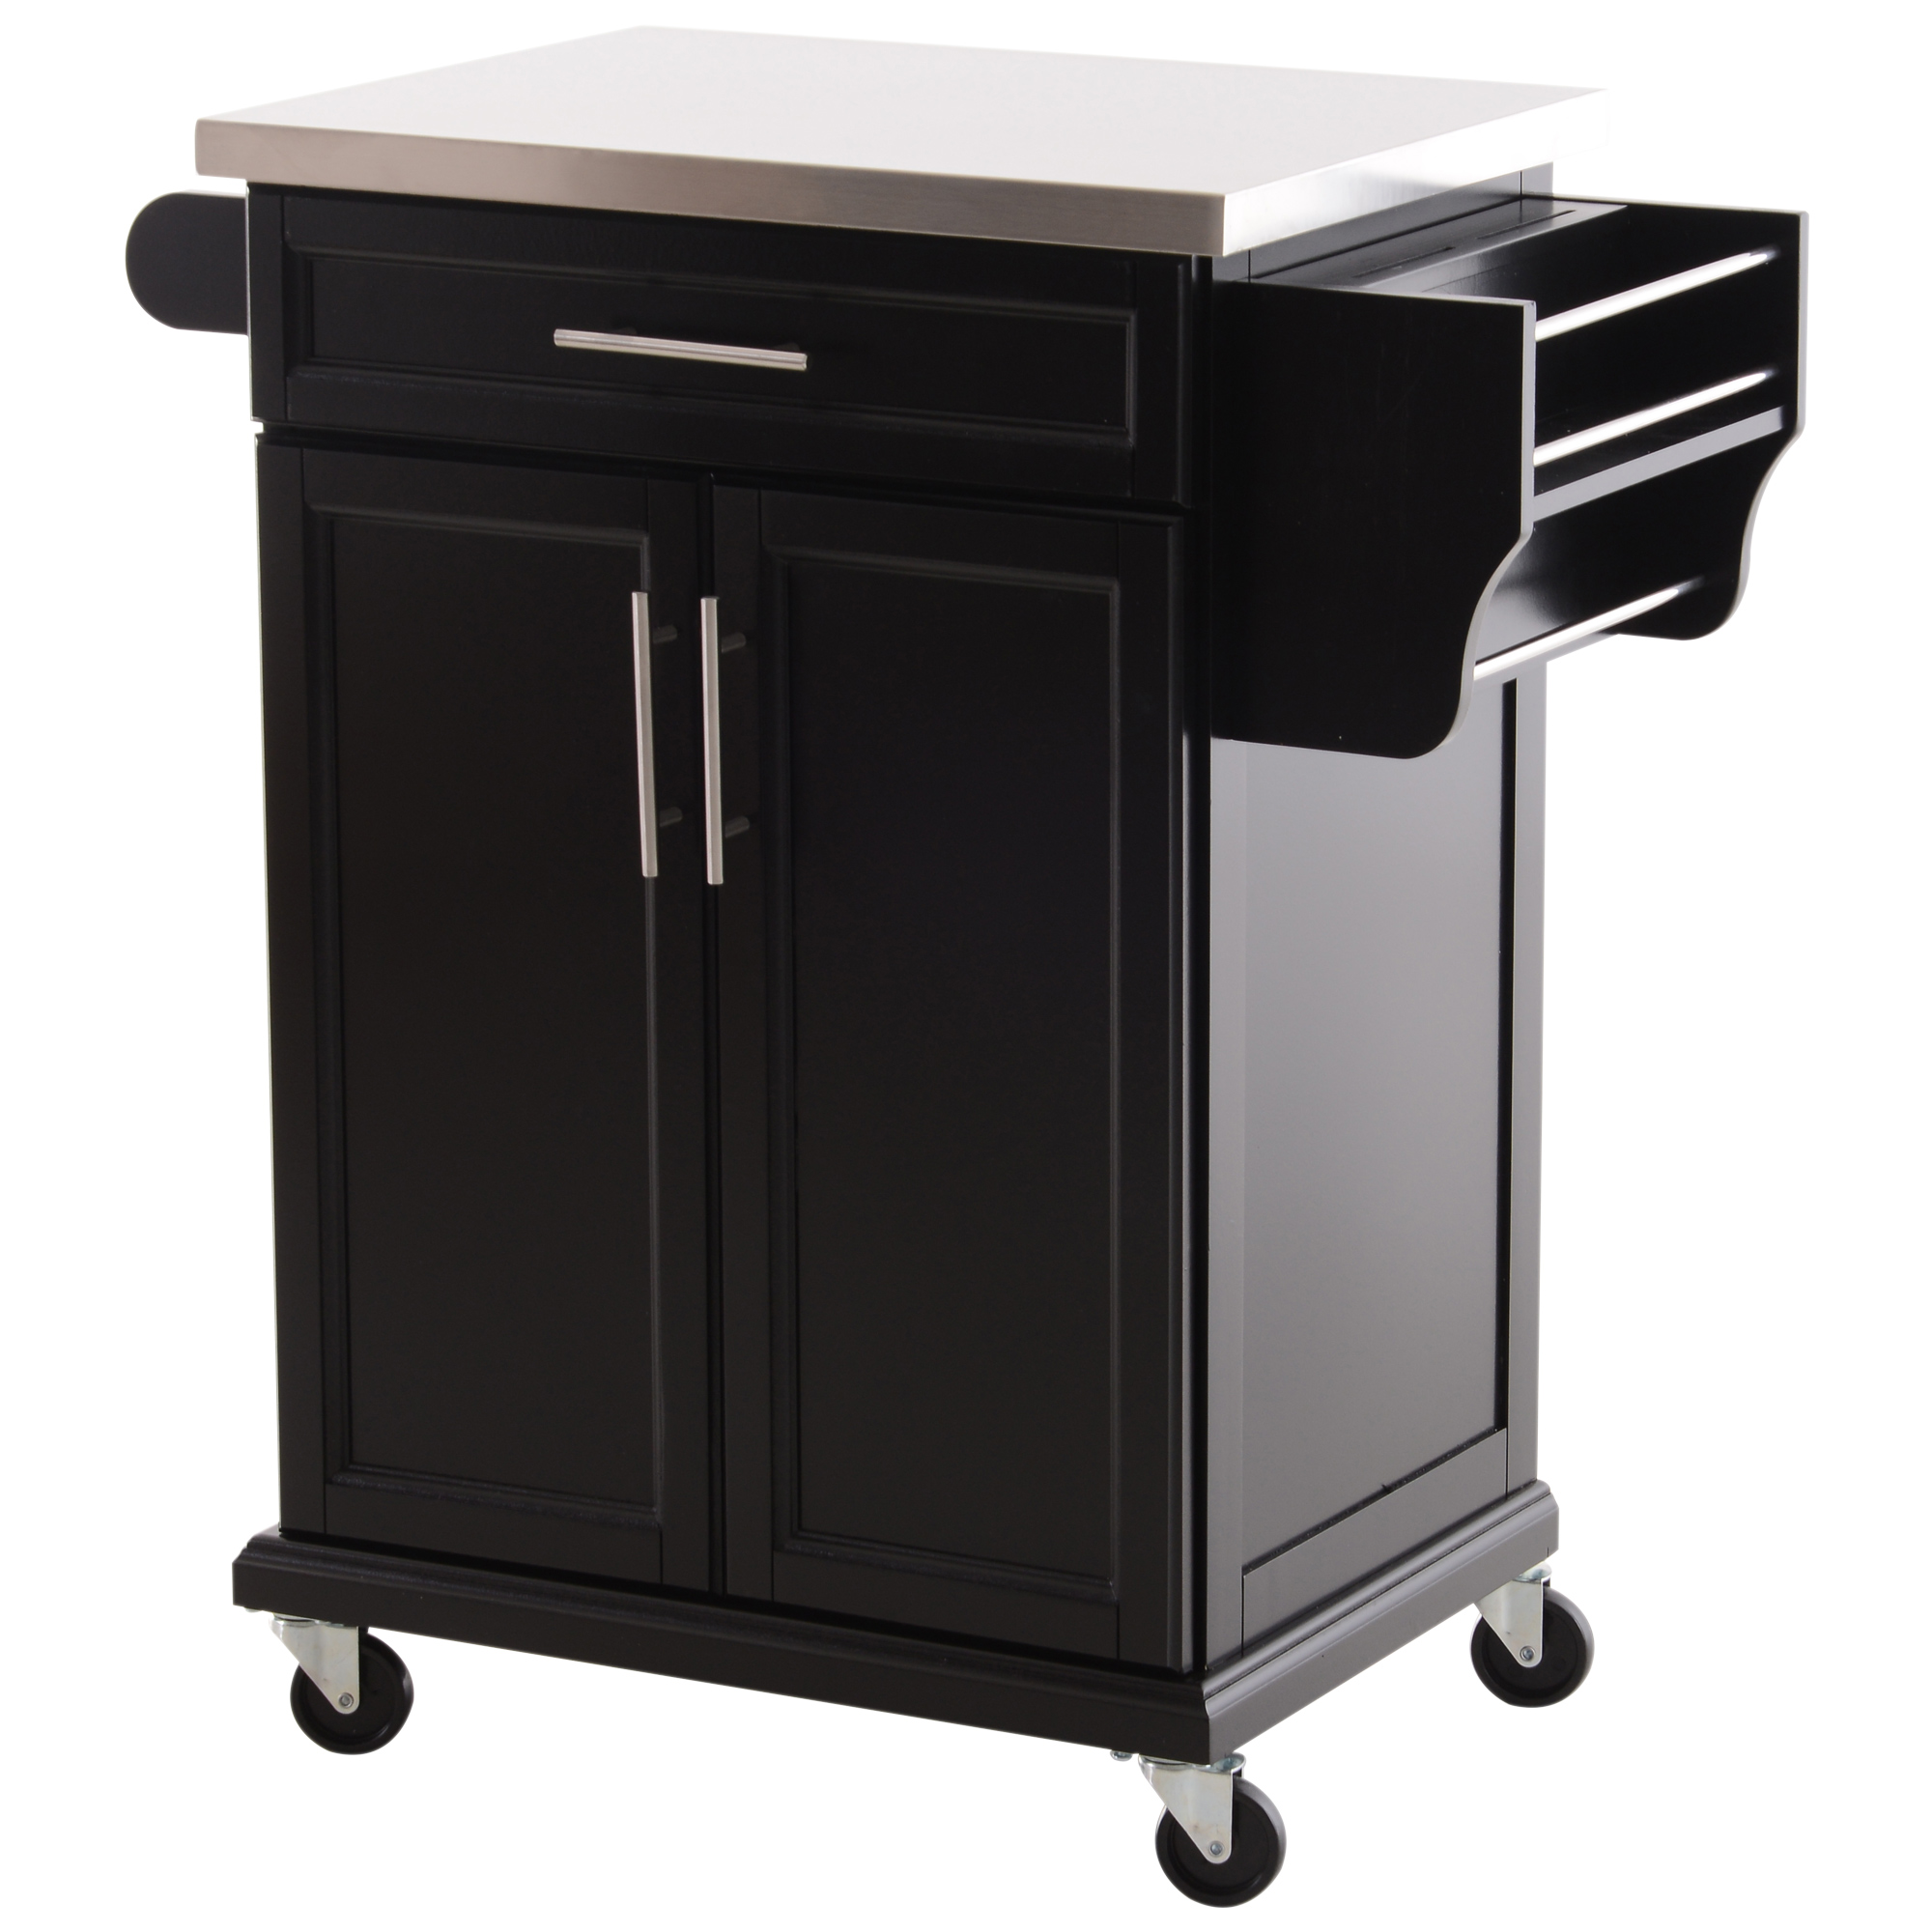 kitchen storage island cart homcom wood stainless steel multi storage rolling kitchen island utility cart with wheels 2647